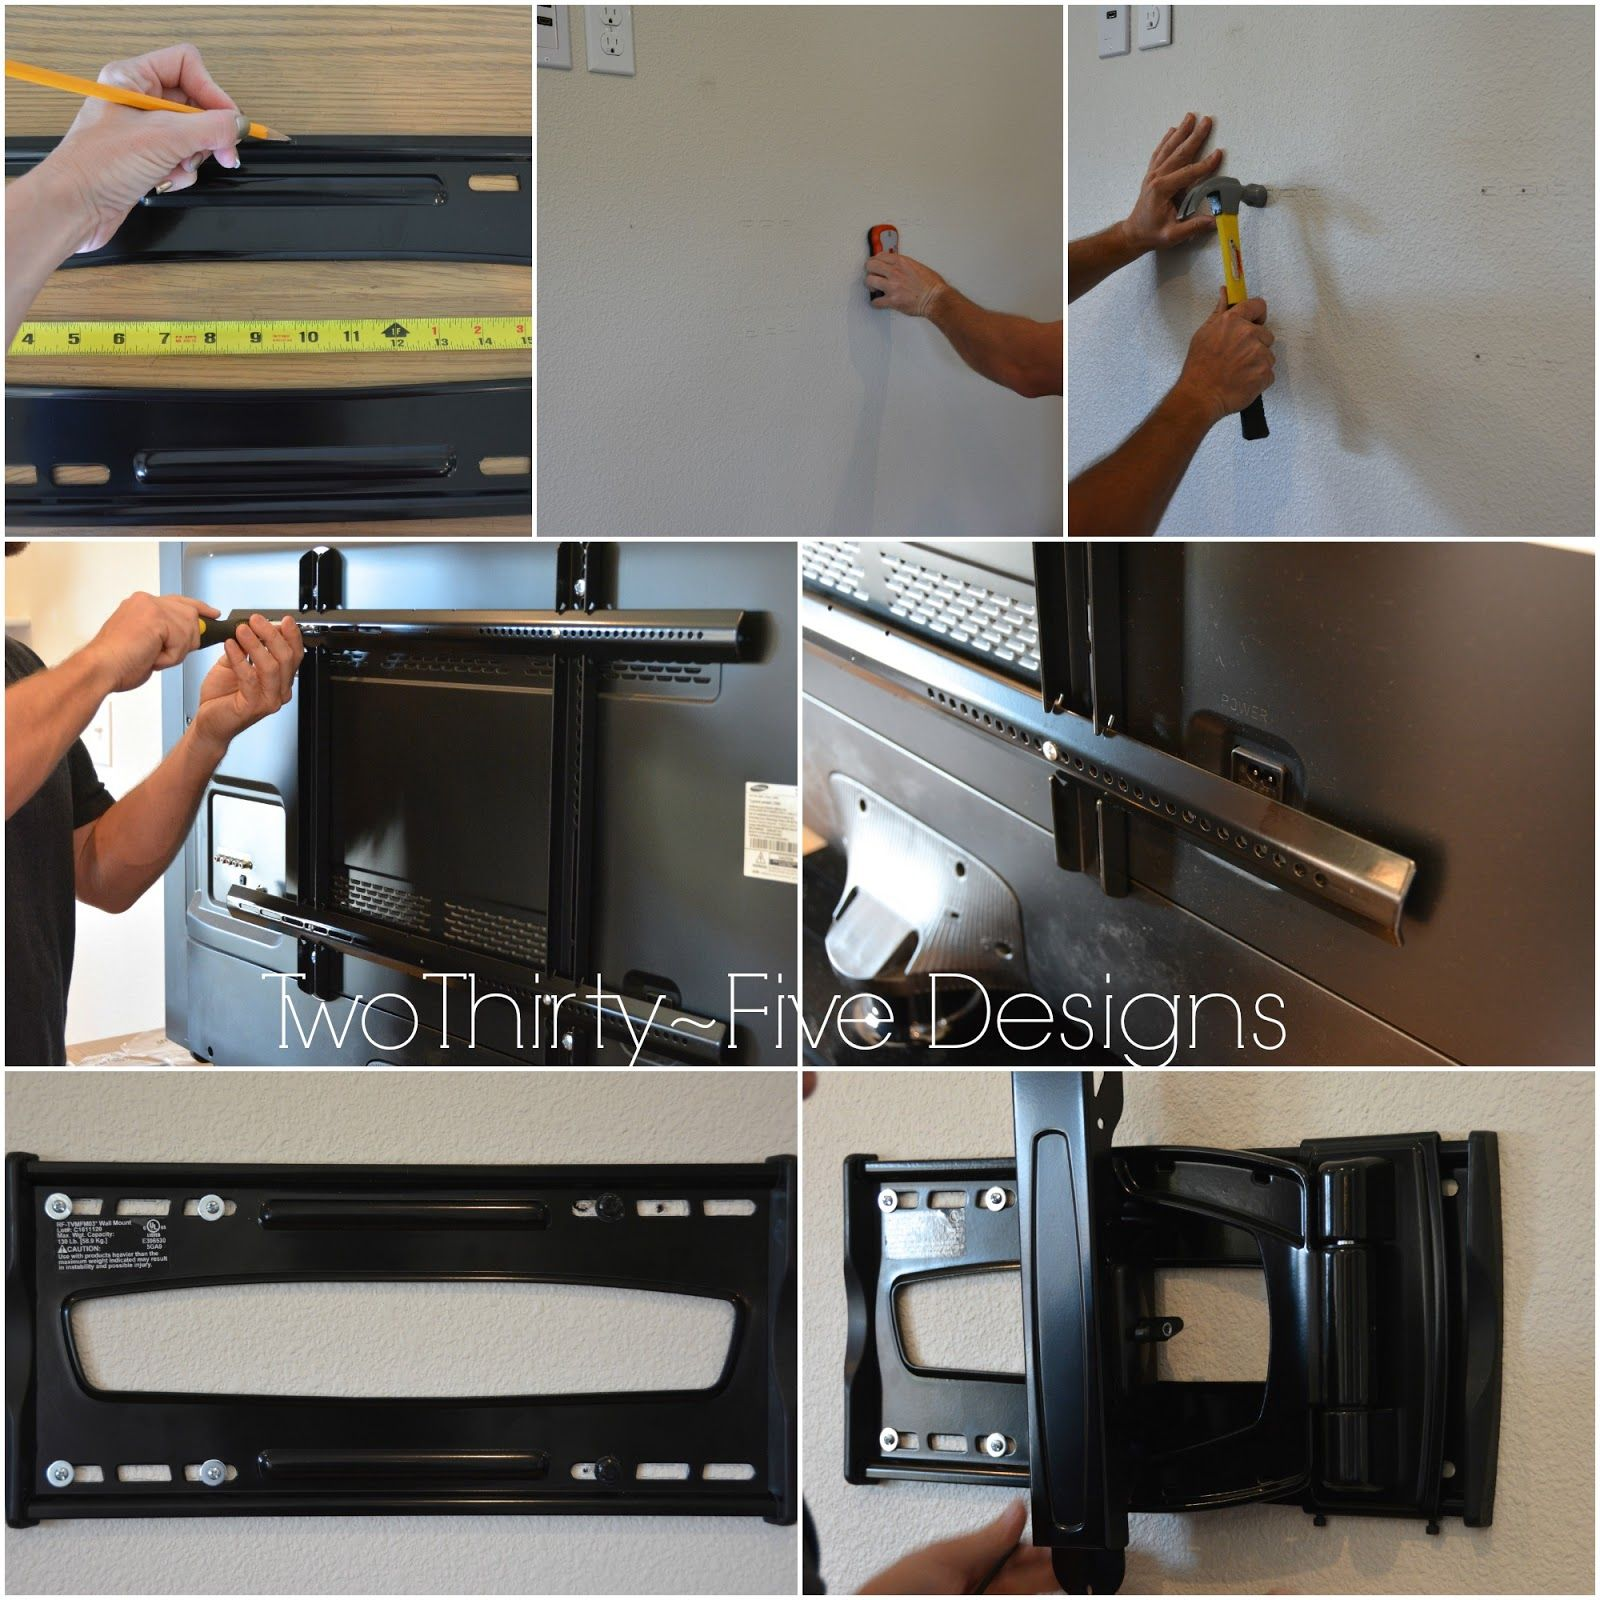 diy wall mounted television hidden cords best crafts on pinterest diy wall wall mount wall. Black Bedroom Furniture Sets. Home Design Ideas